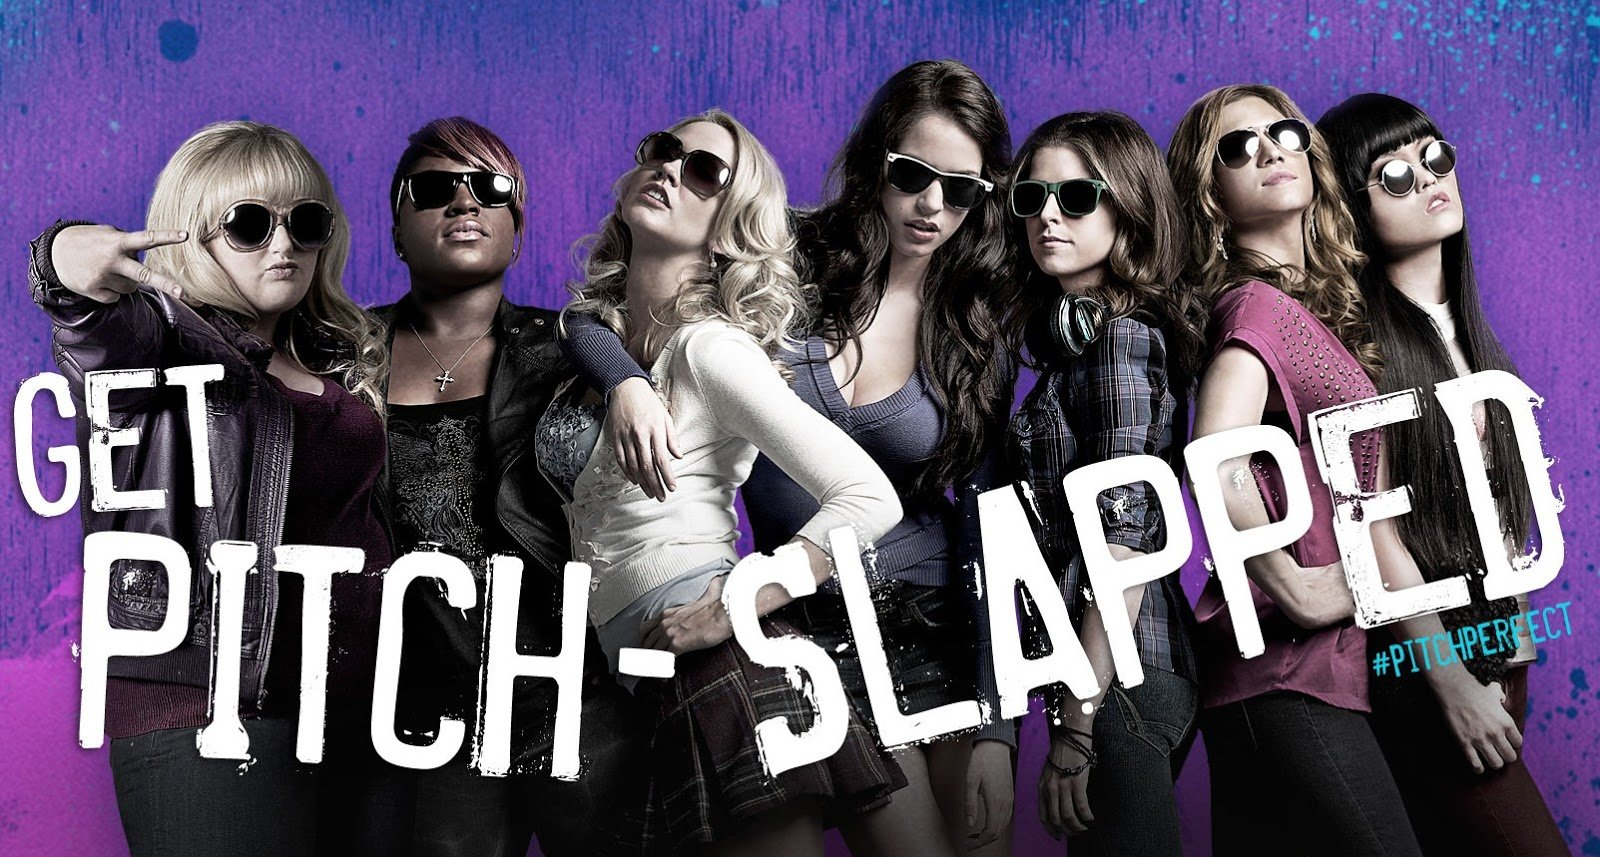 Pitch Perfect 2 confirmed for 2015